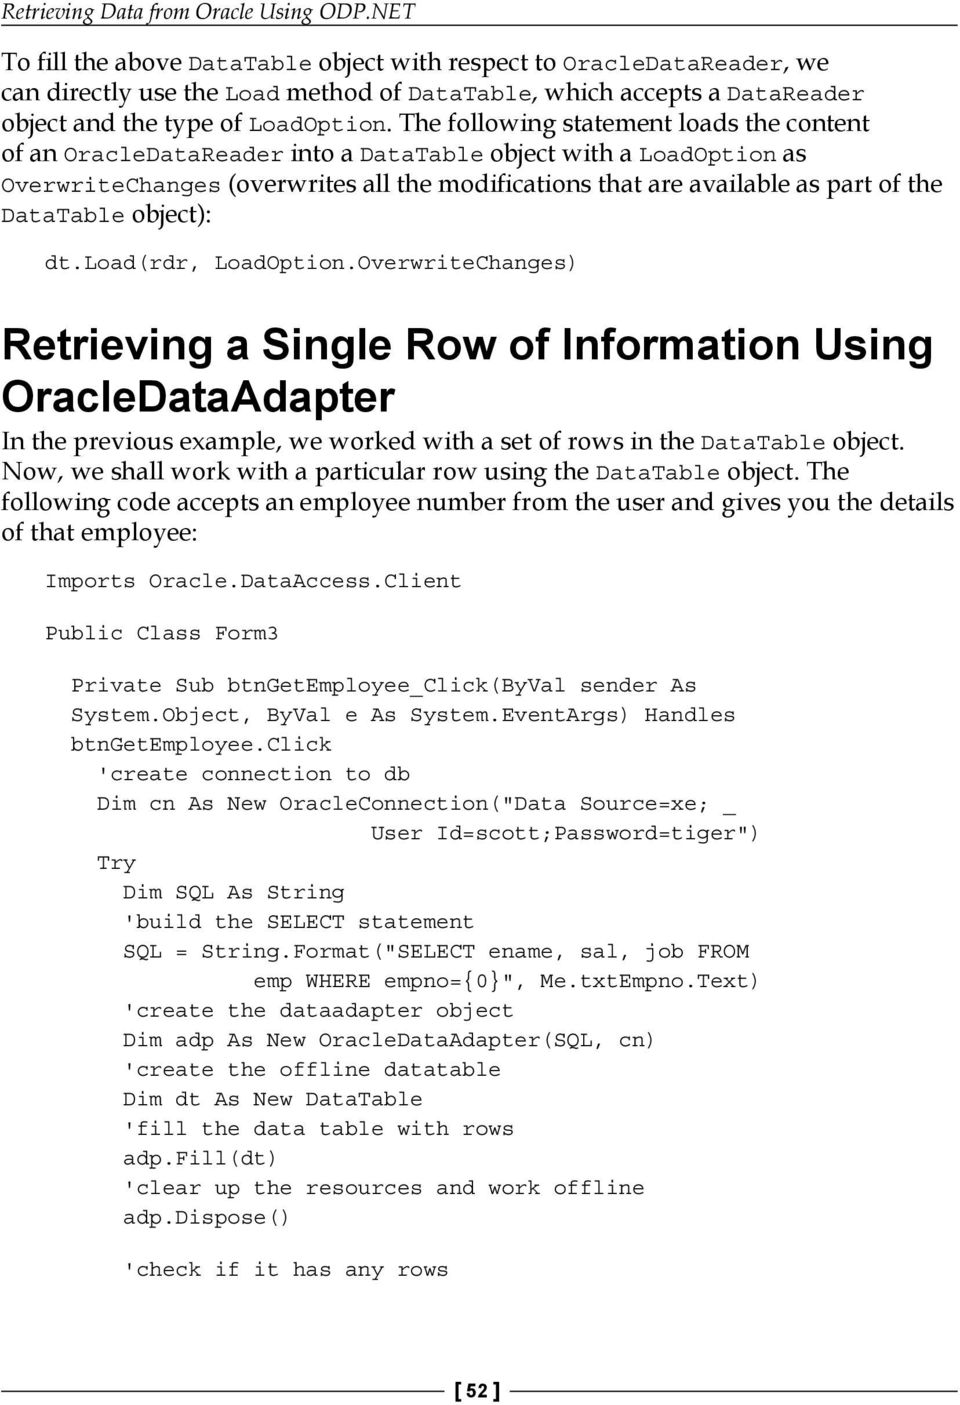 Retrieving Data from Oracle Using ODP NET - PDF